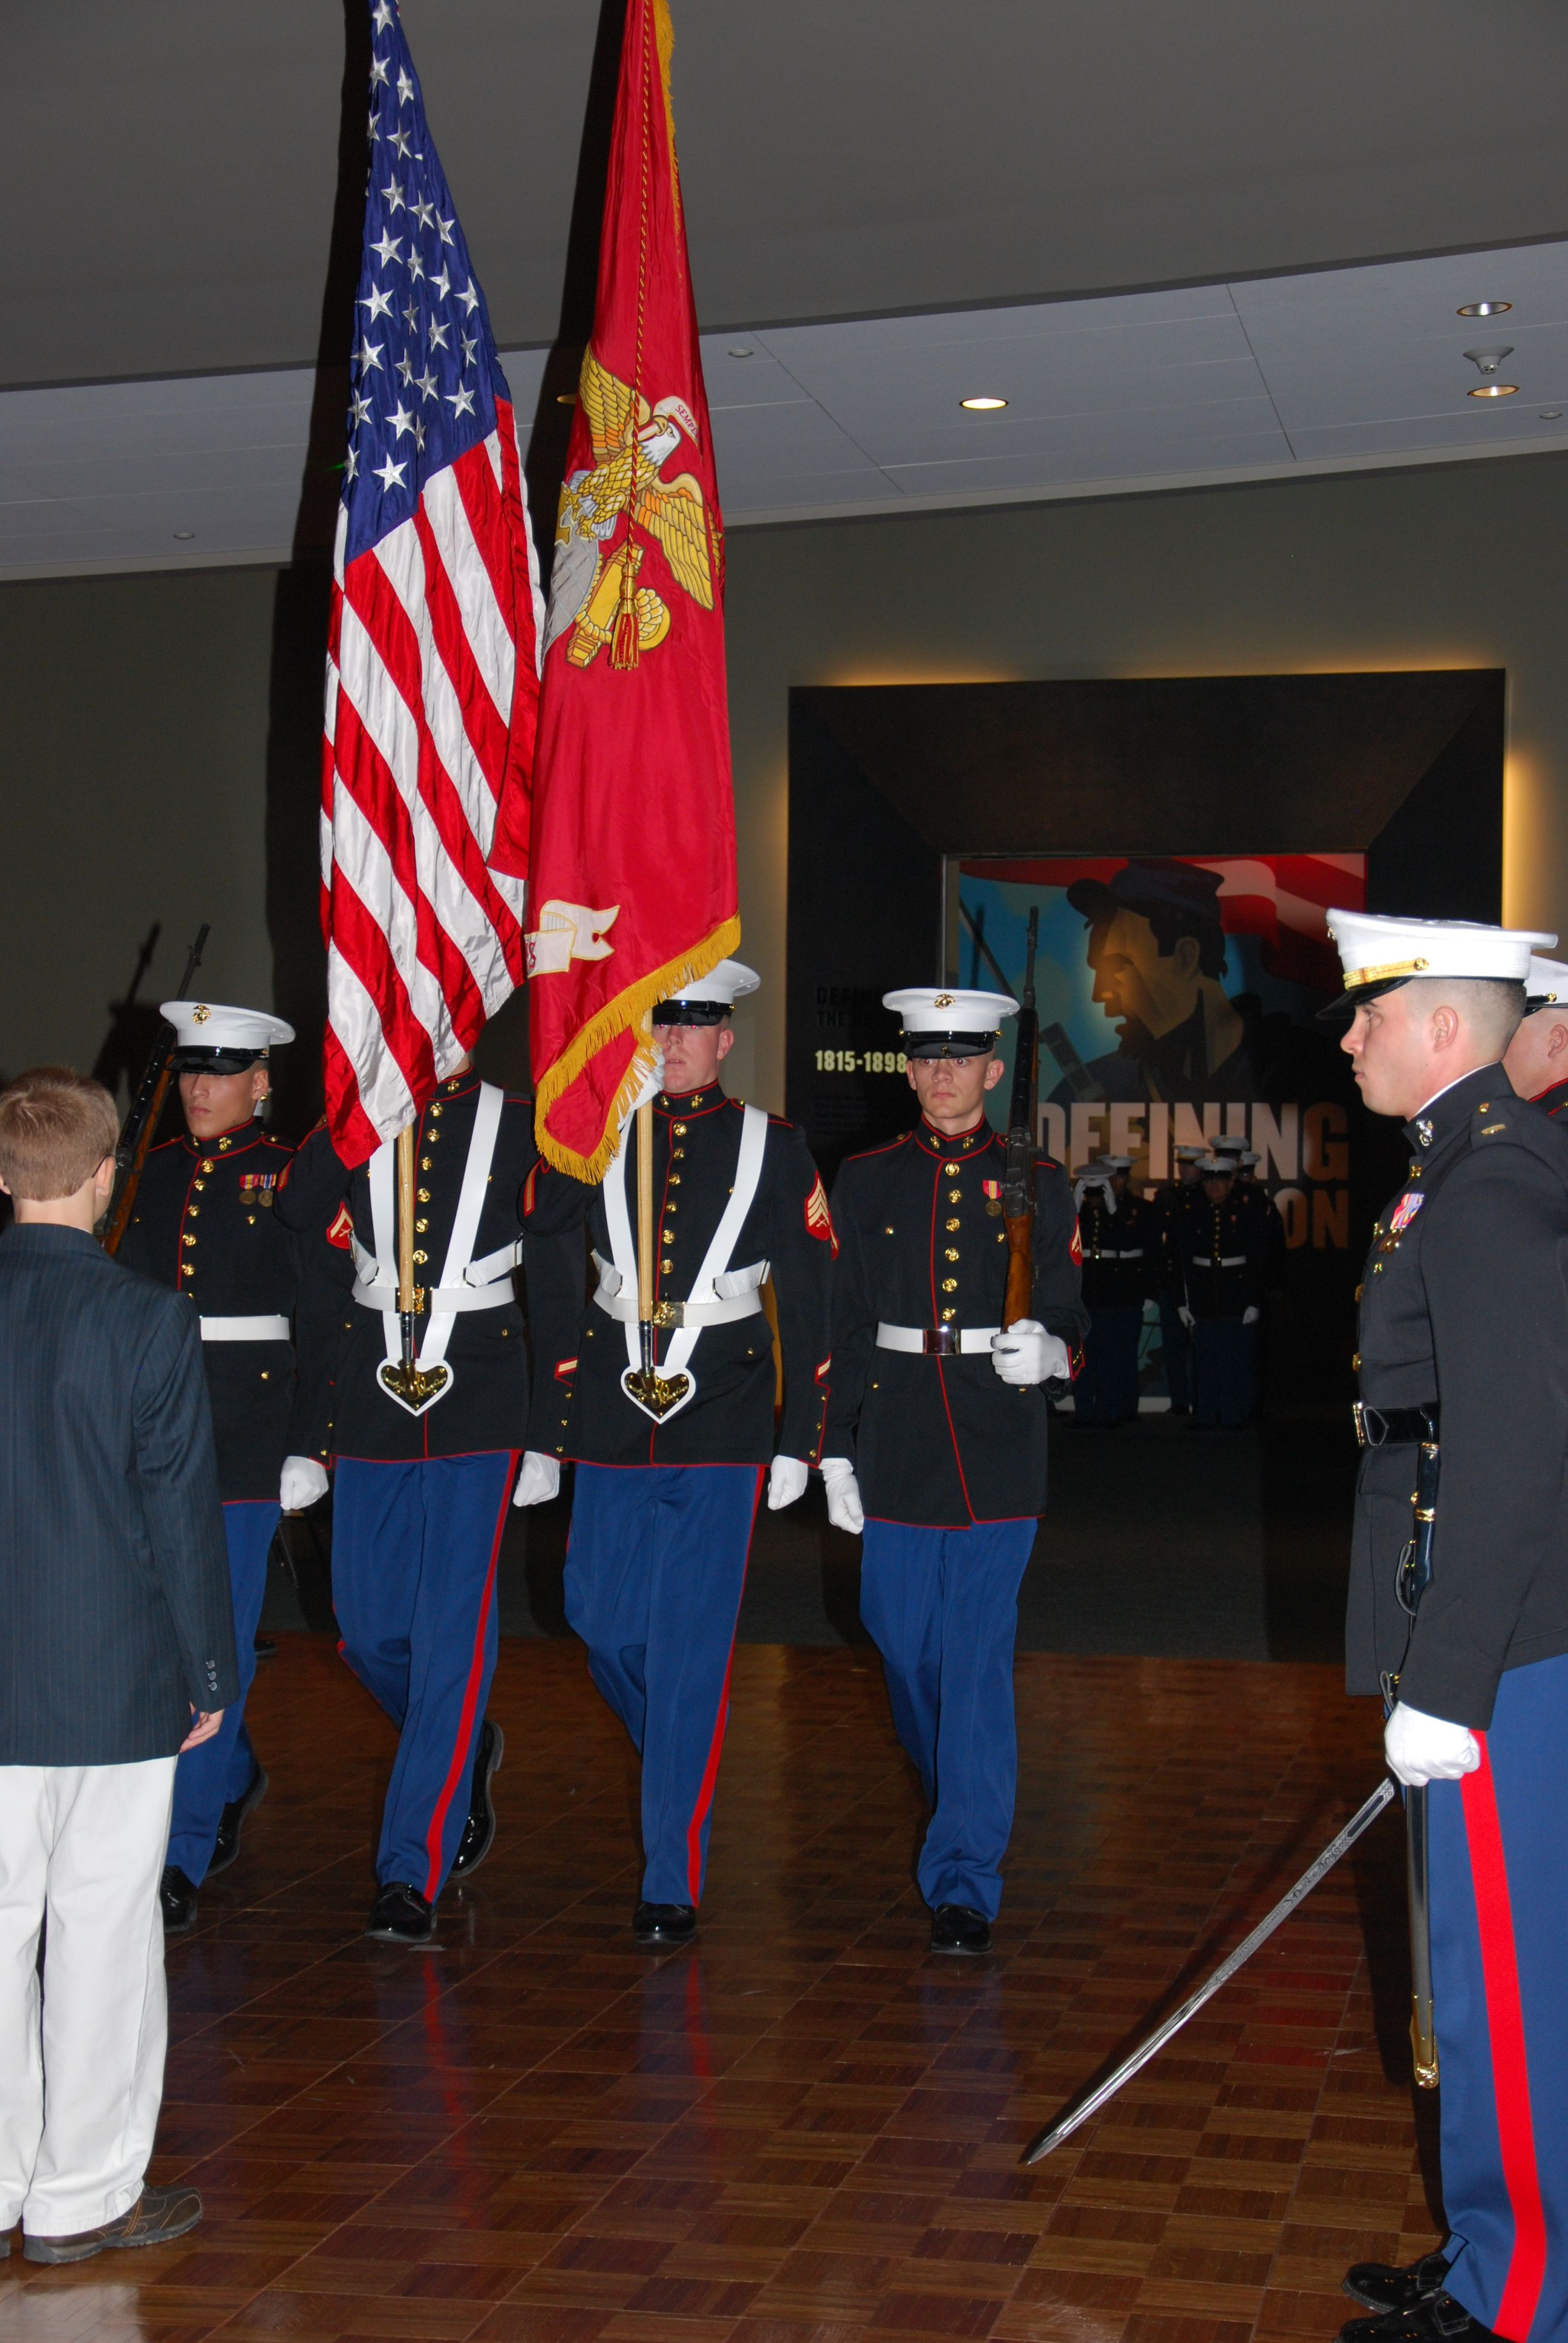 2012 Marine Corps Birthday Ball at the National Infantry